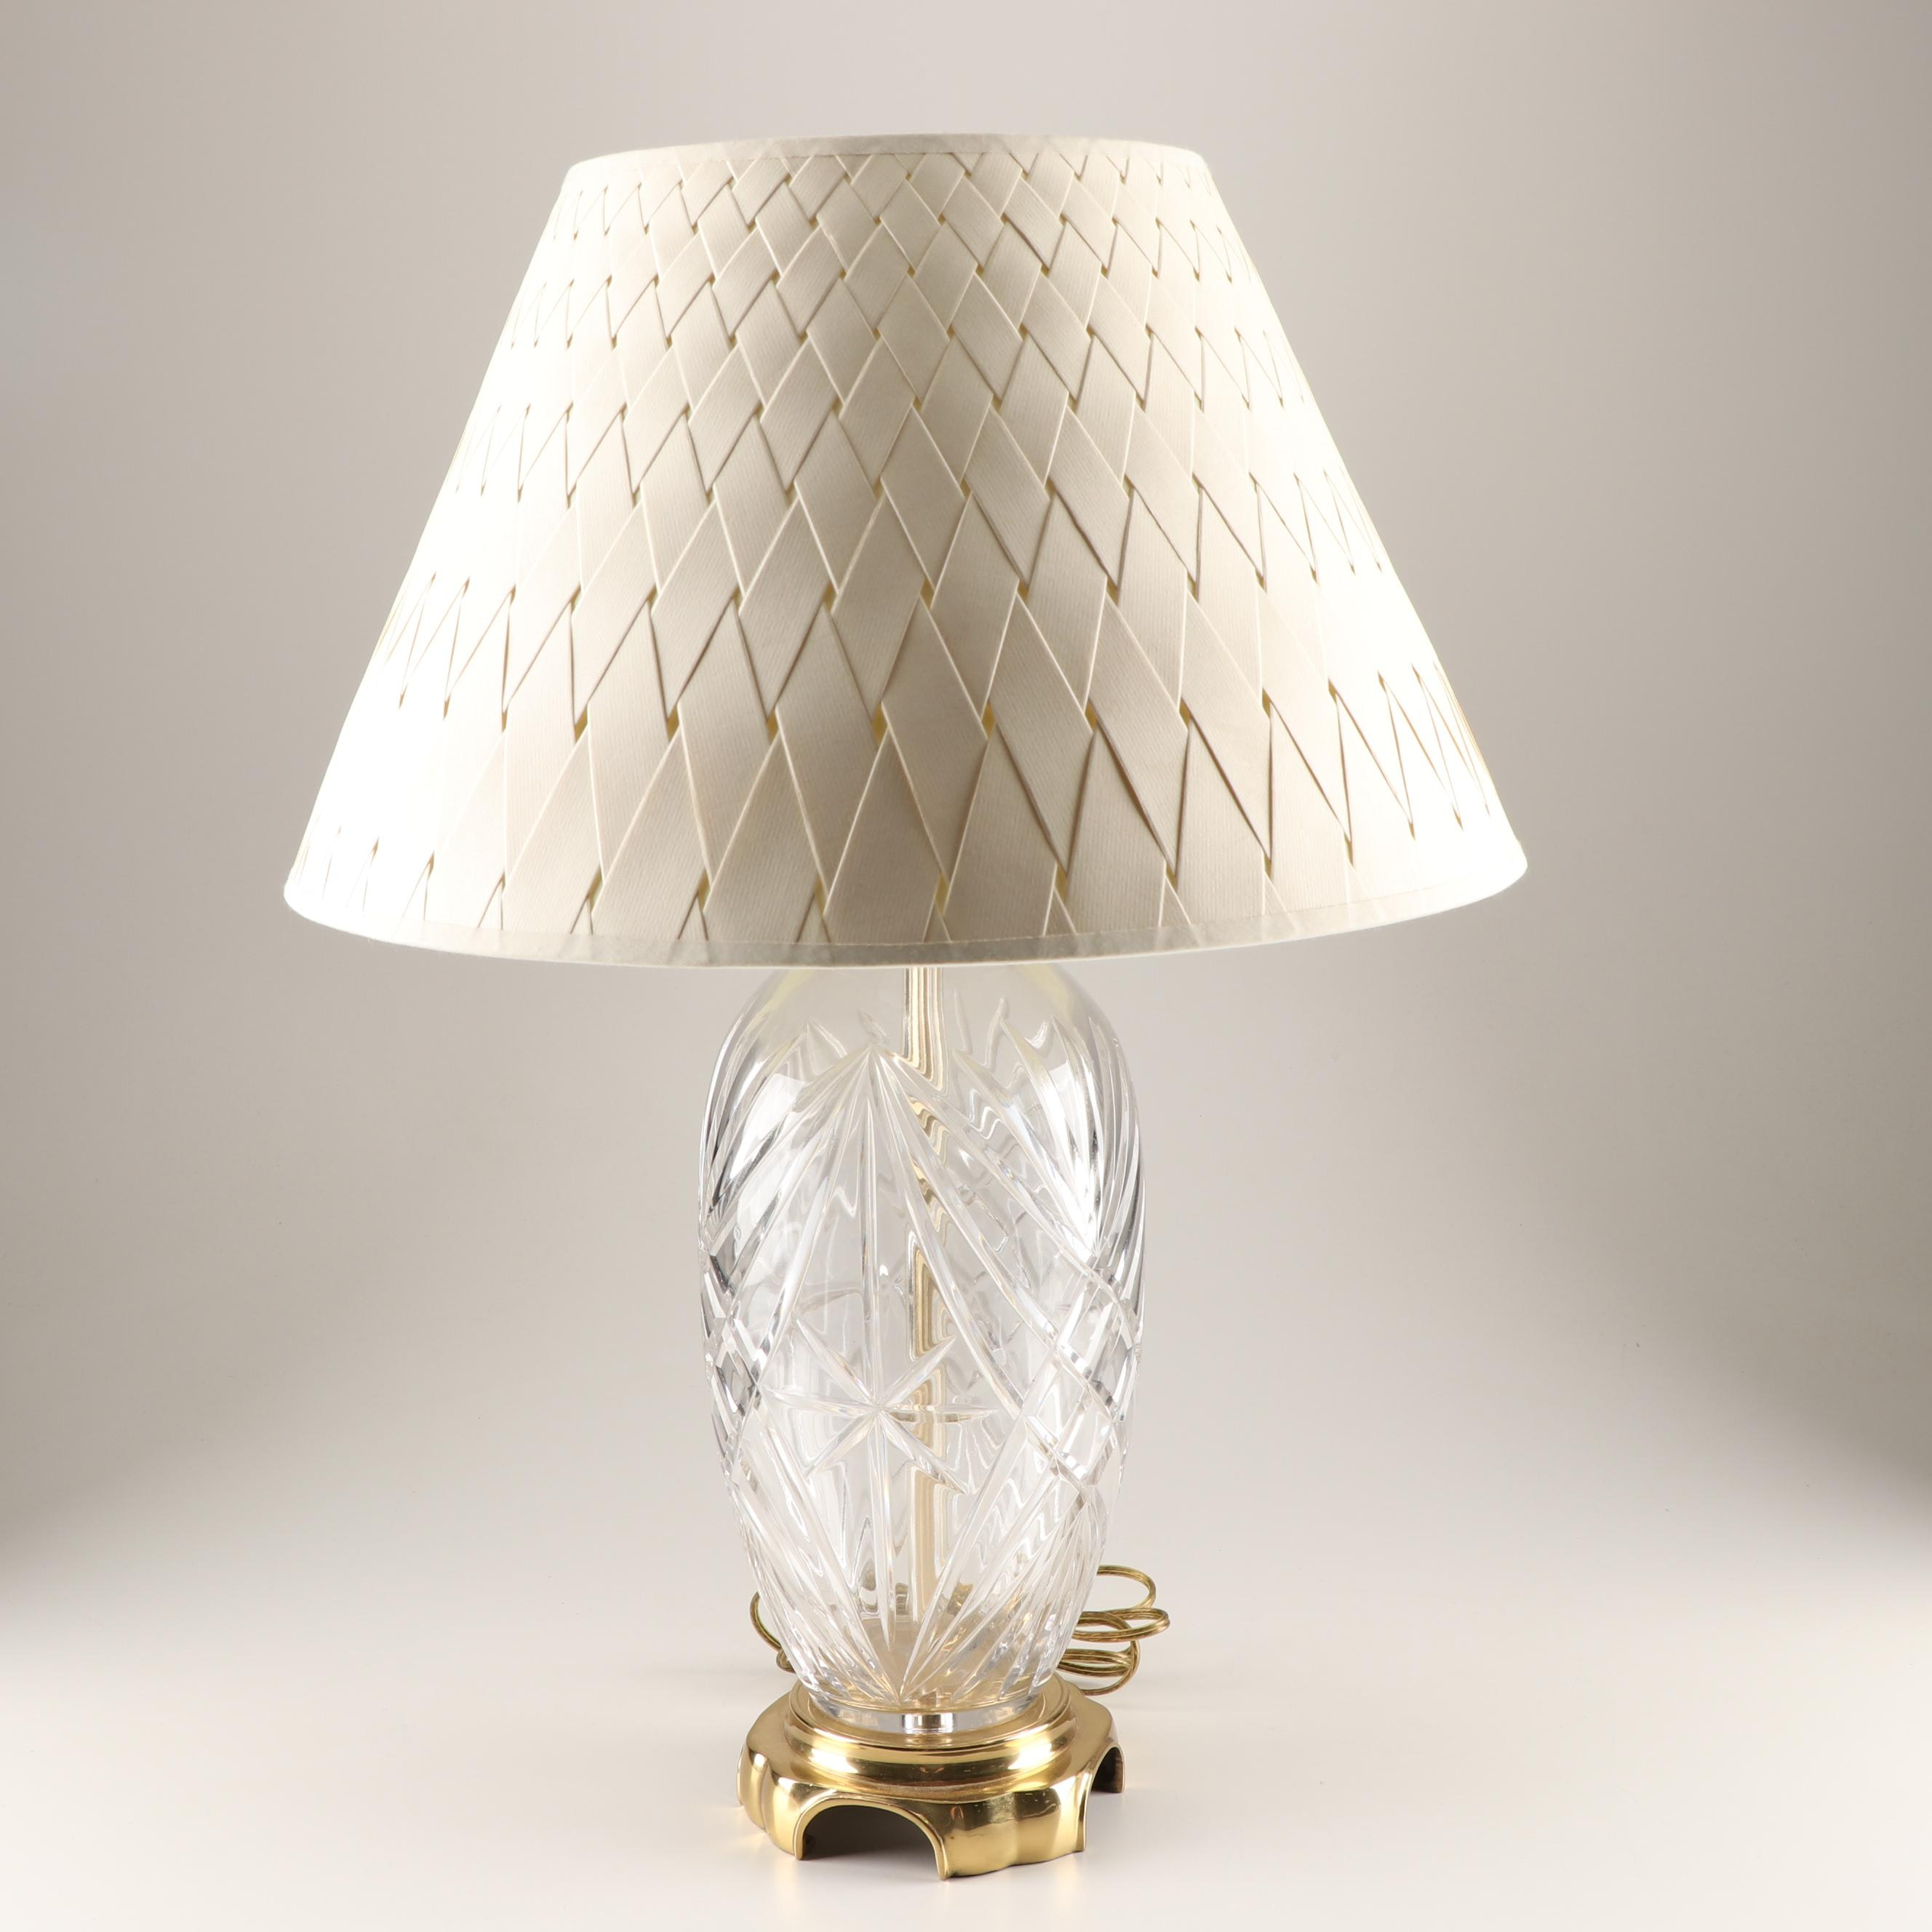 Remington Cut Glass Table Lamp with Woven Shade